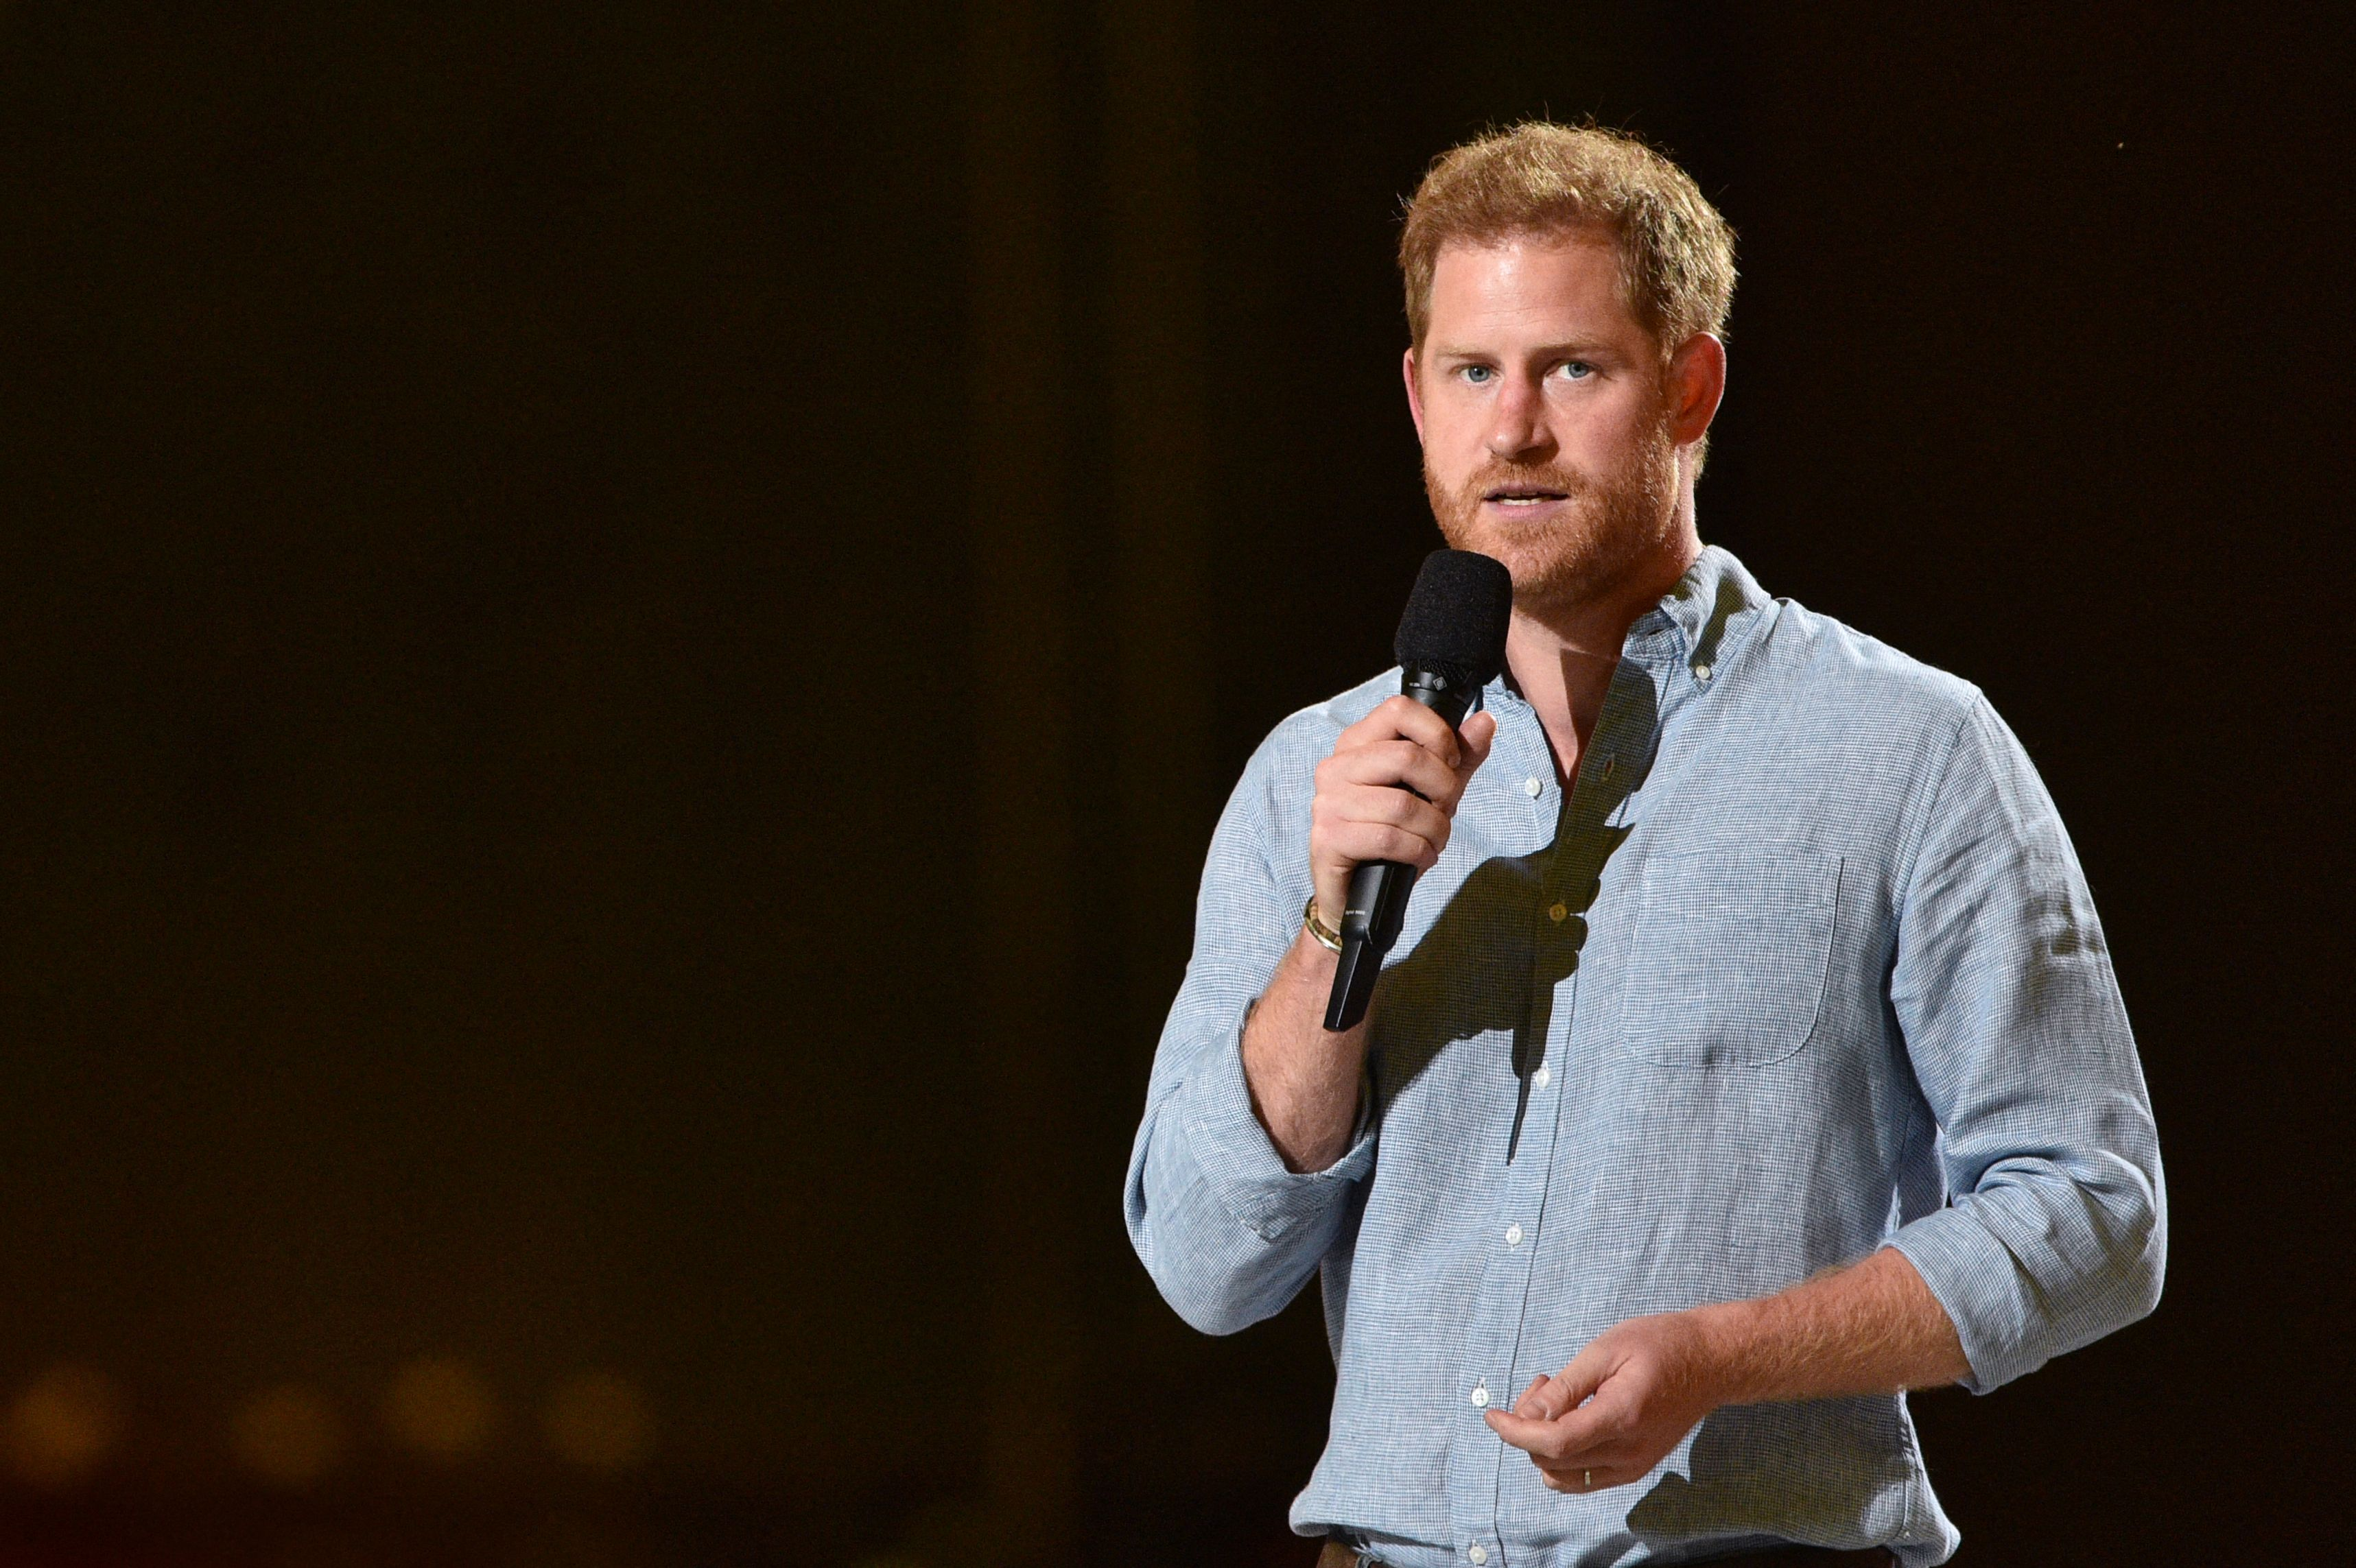 Prince Harry says he is focused on 'breaking the cycle' as a dad